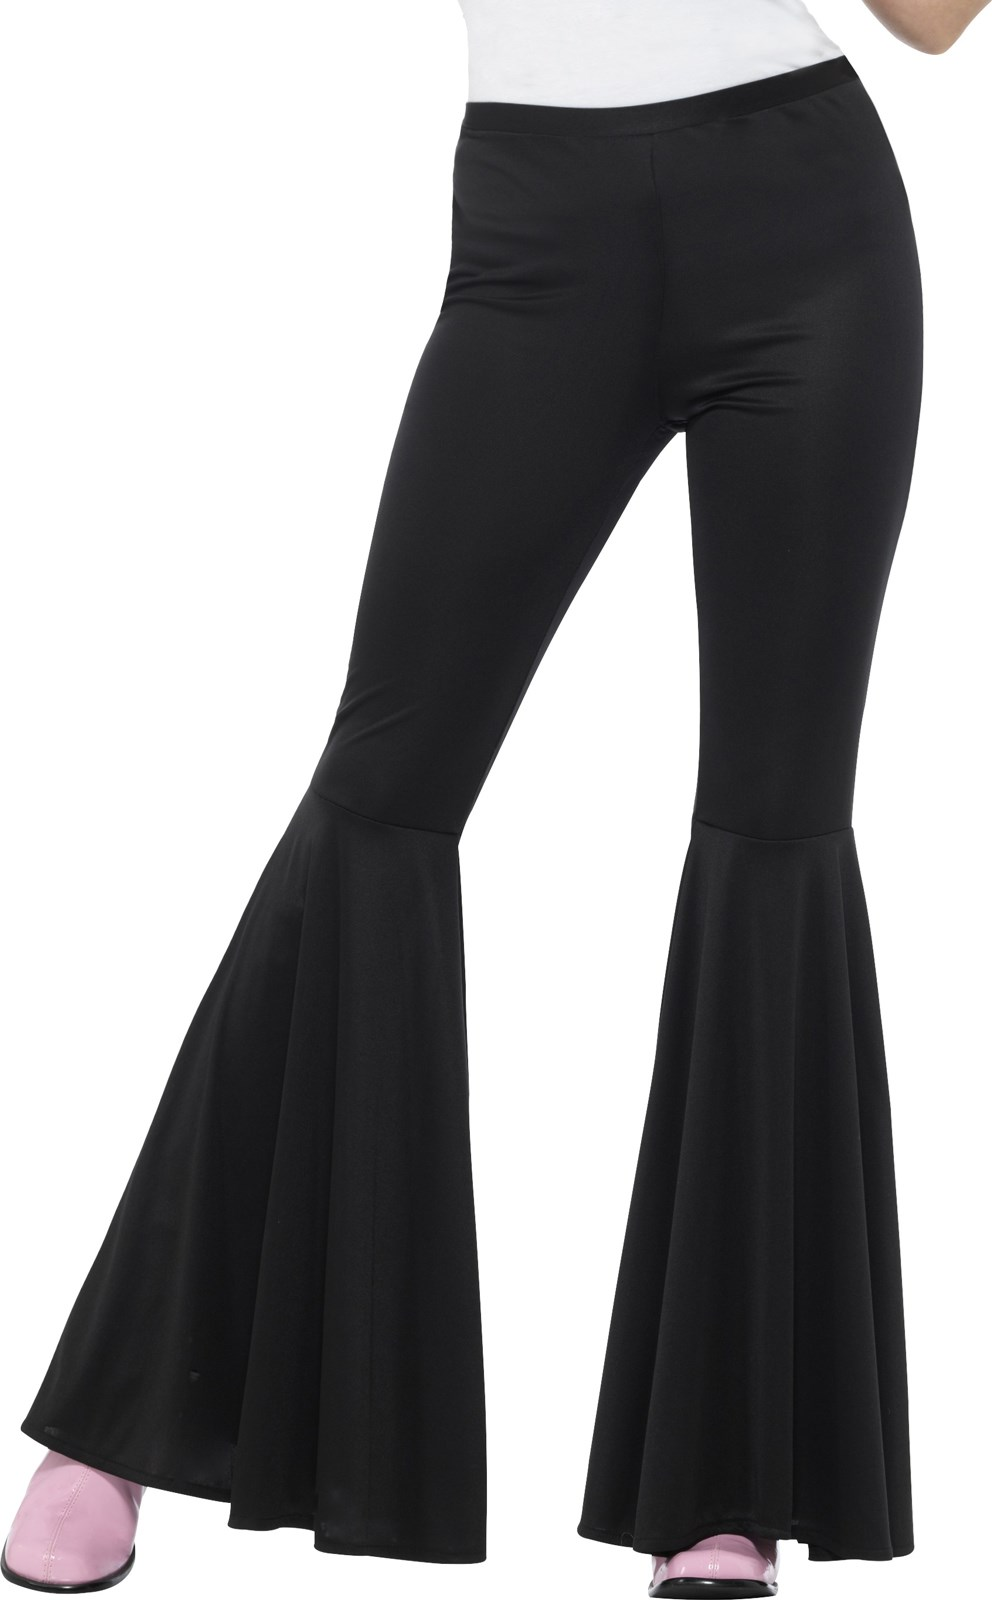 Flared Trousers Black Women S Buycostumes Com